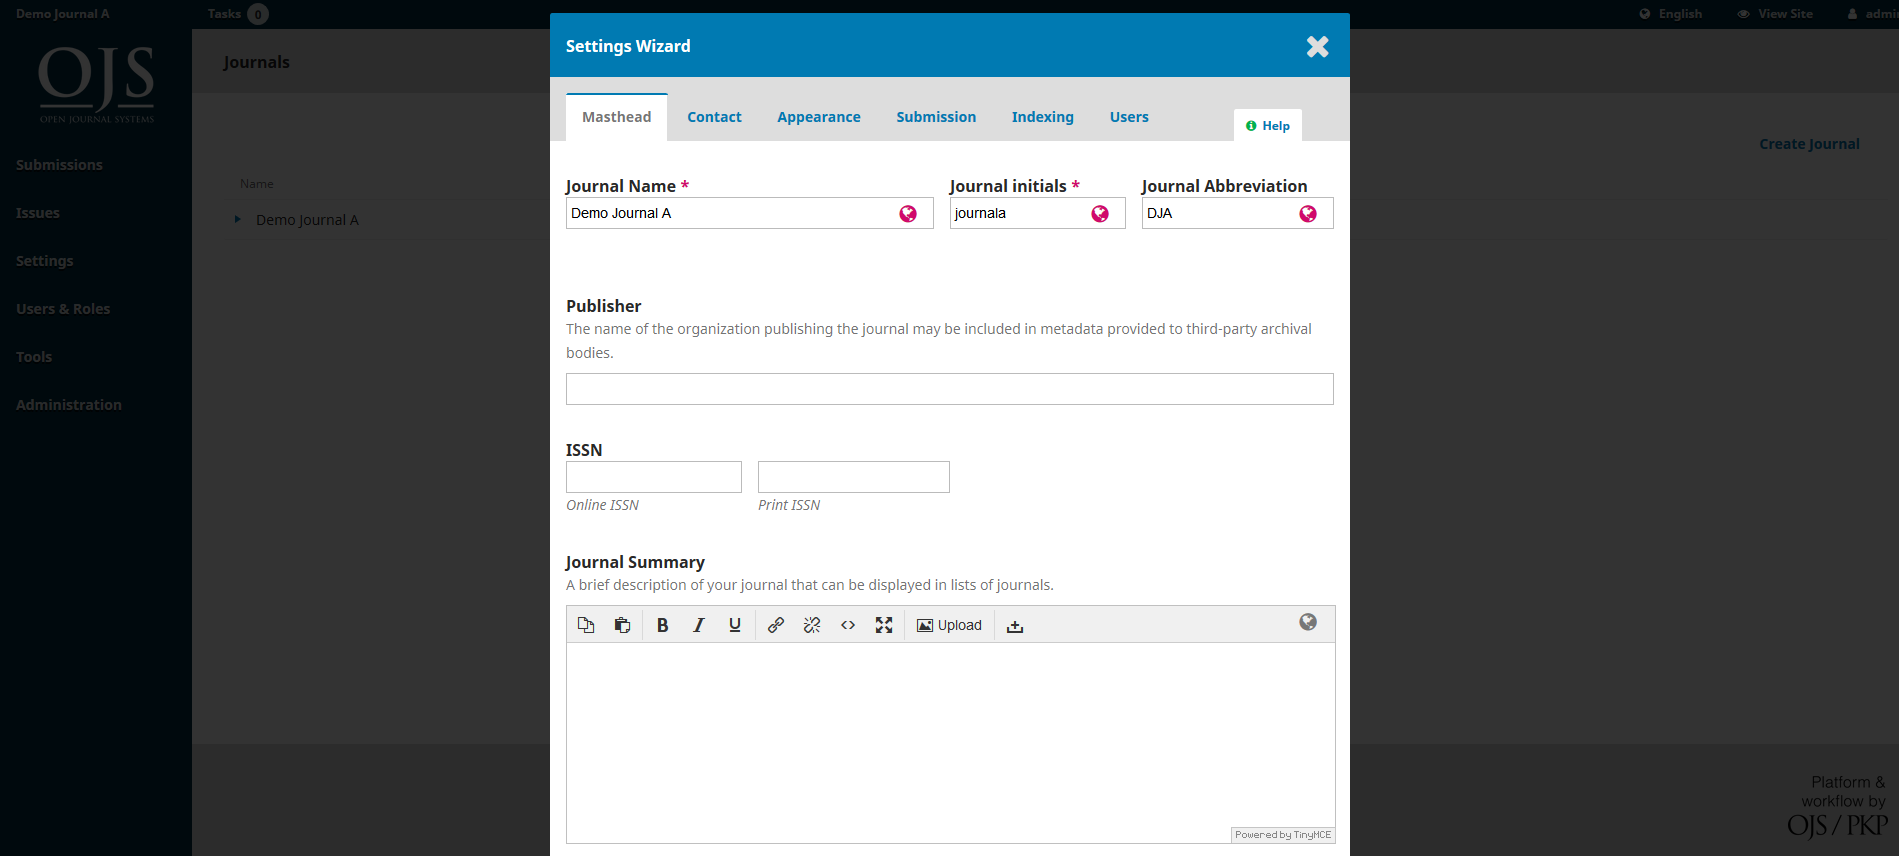 OJS 3.x hosted journal setting wizard